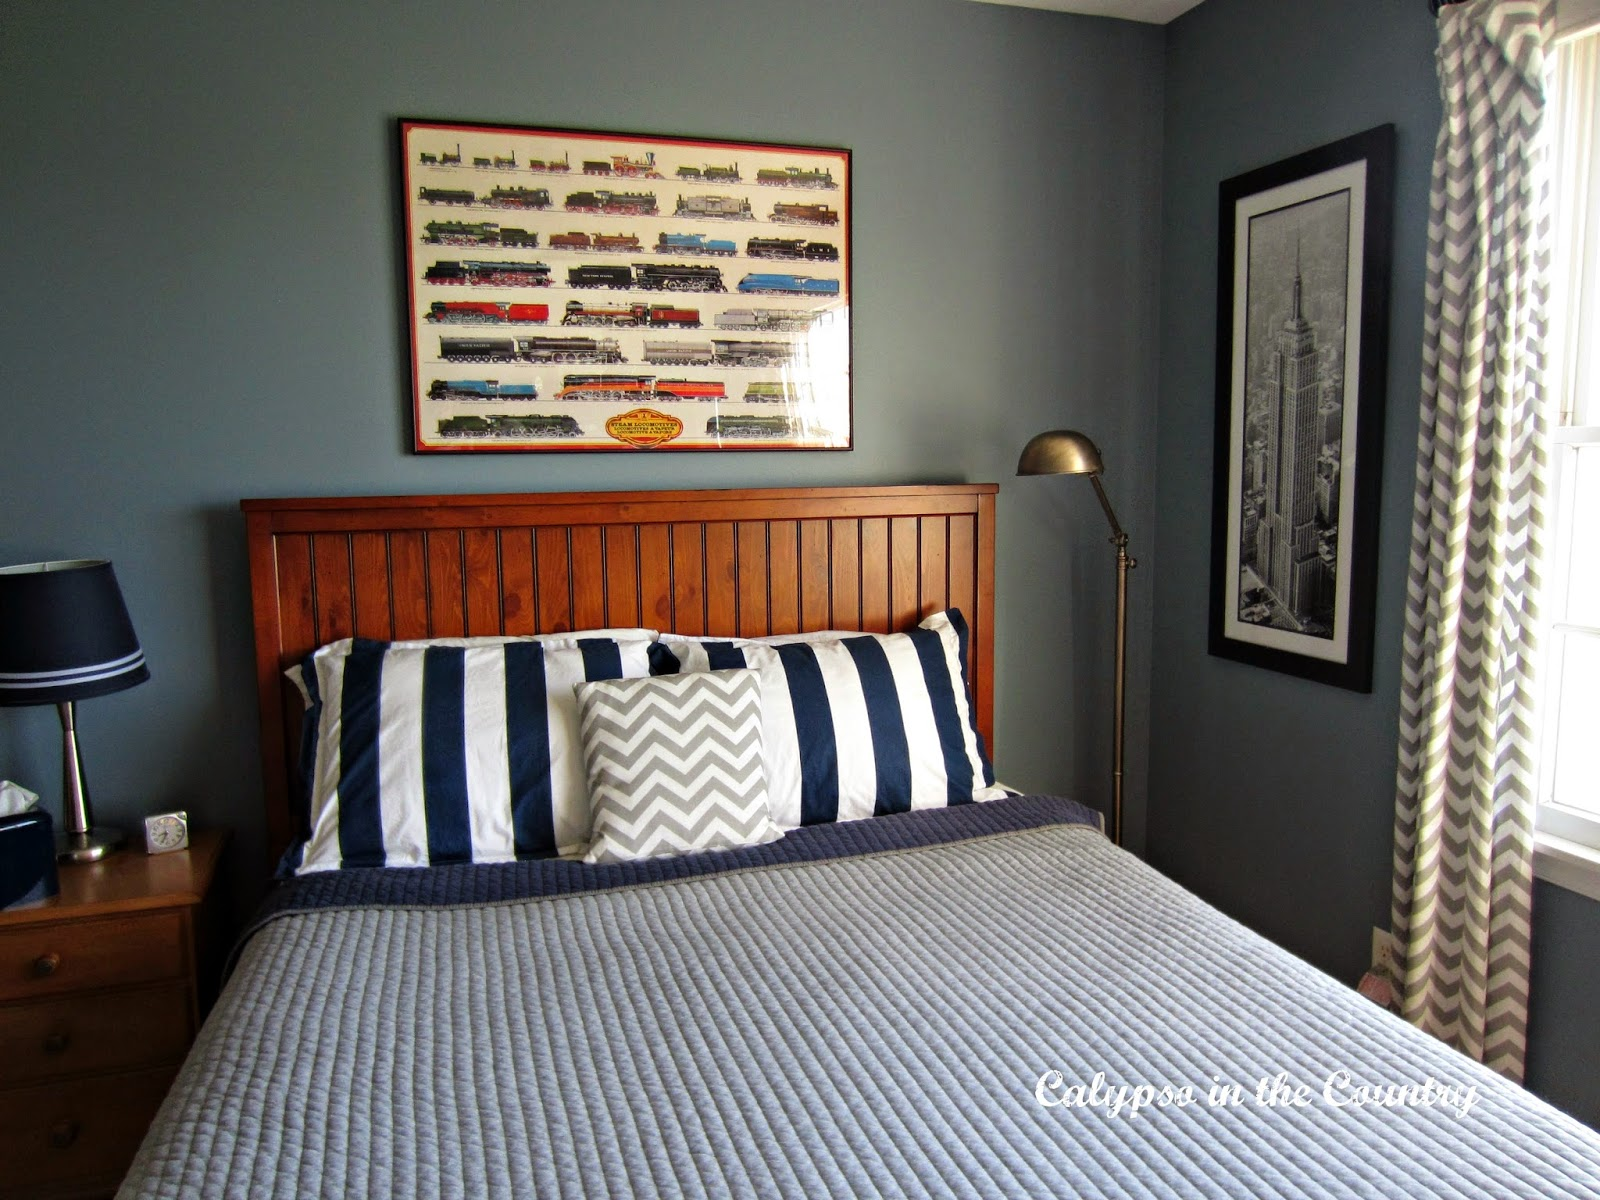 A new floor lamp calypso in the country benjamin moore paint mozeypictures Gallery